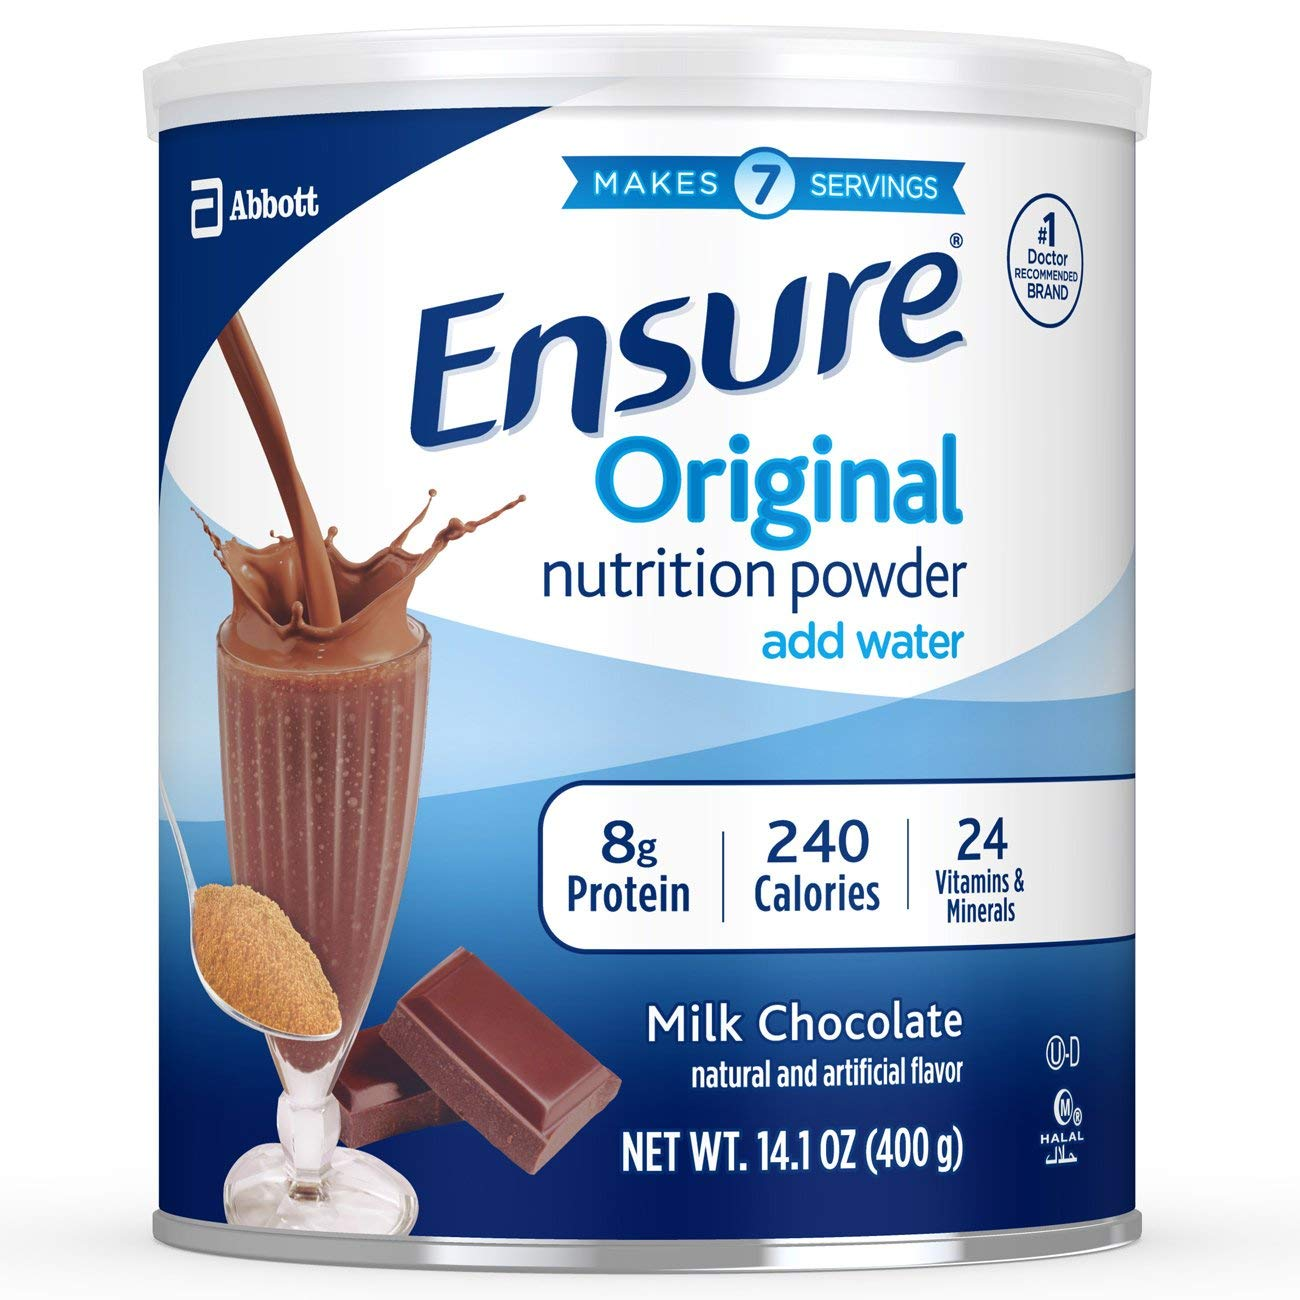 Ensure Original Nutrition Shake Powder - Pack of 3 Jars - 14.1 oz per Jar - Milk Chocolate - Meal Replacement Shake with 8 g of Protein